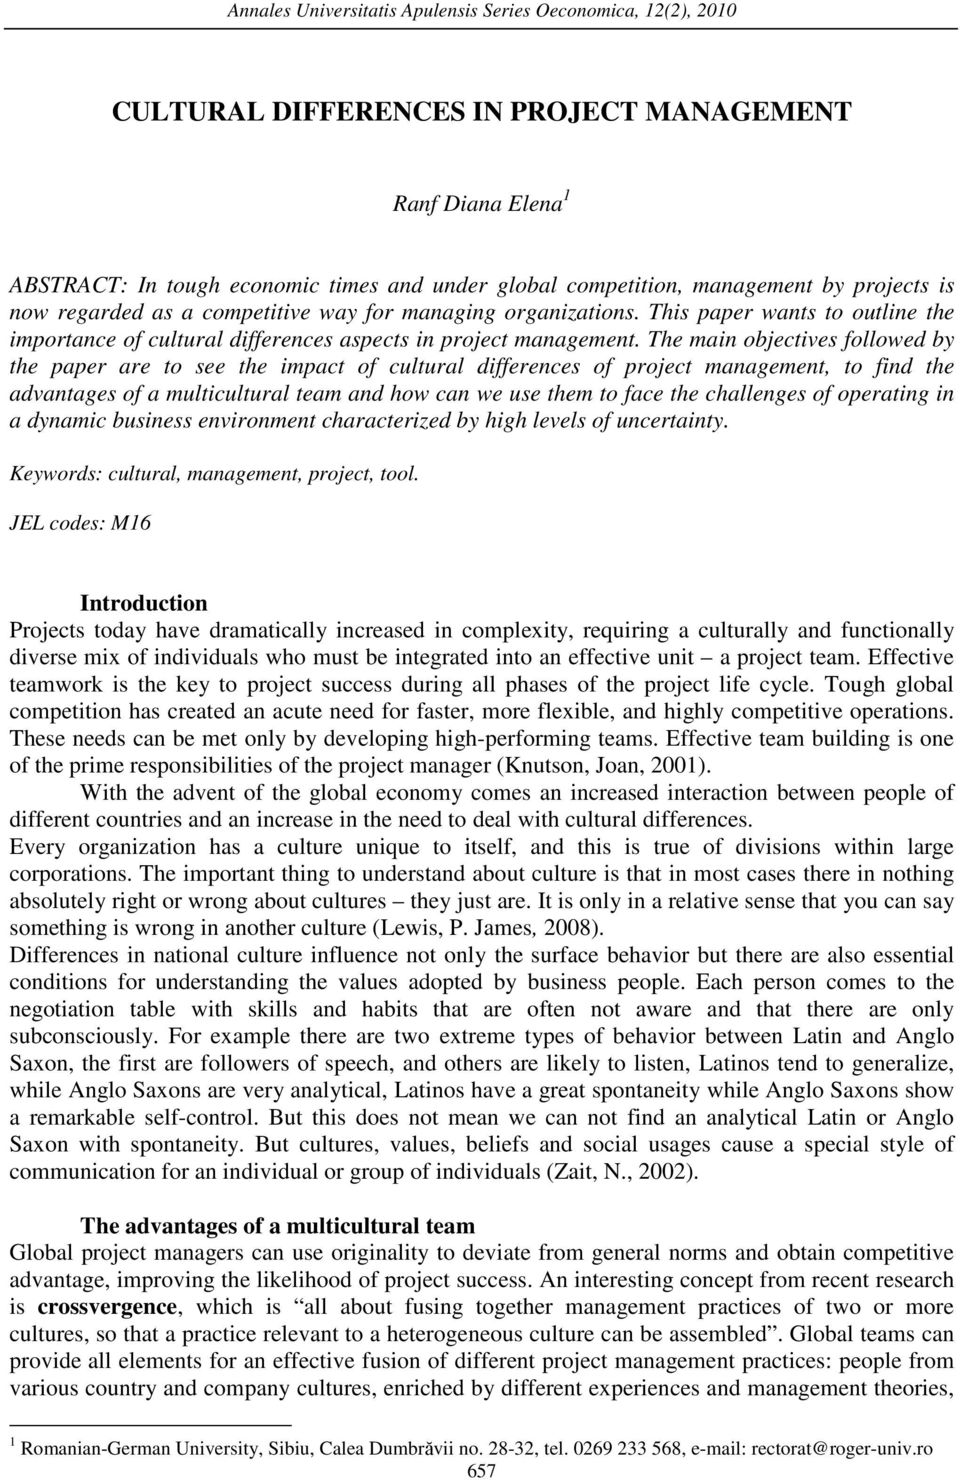 cultural differences and people management essay This paper describes the most well-known and accepted theories of cultural differences and illustrates them with examples from project management these theories consider relations between people, motivational orientation, definition of self and others, attitudes toward time, risk, control, context, and the environment.